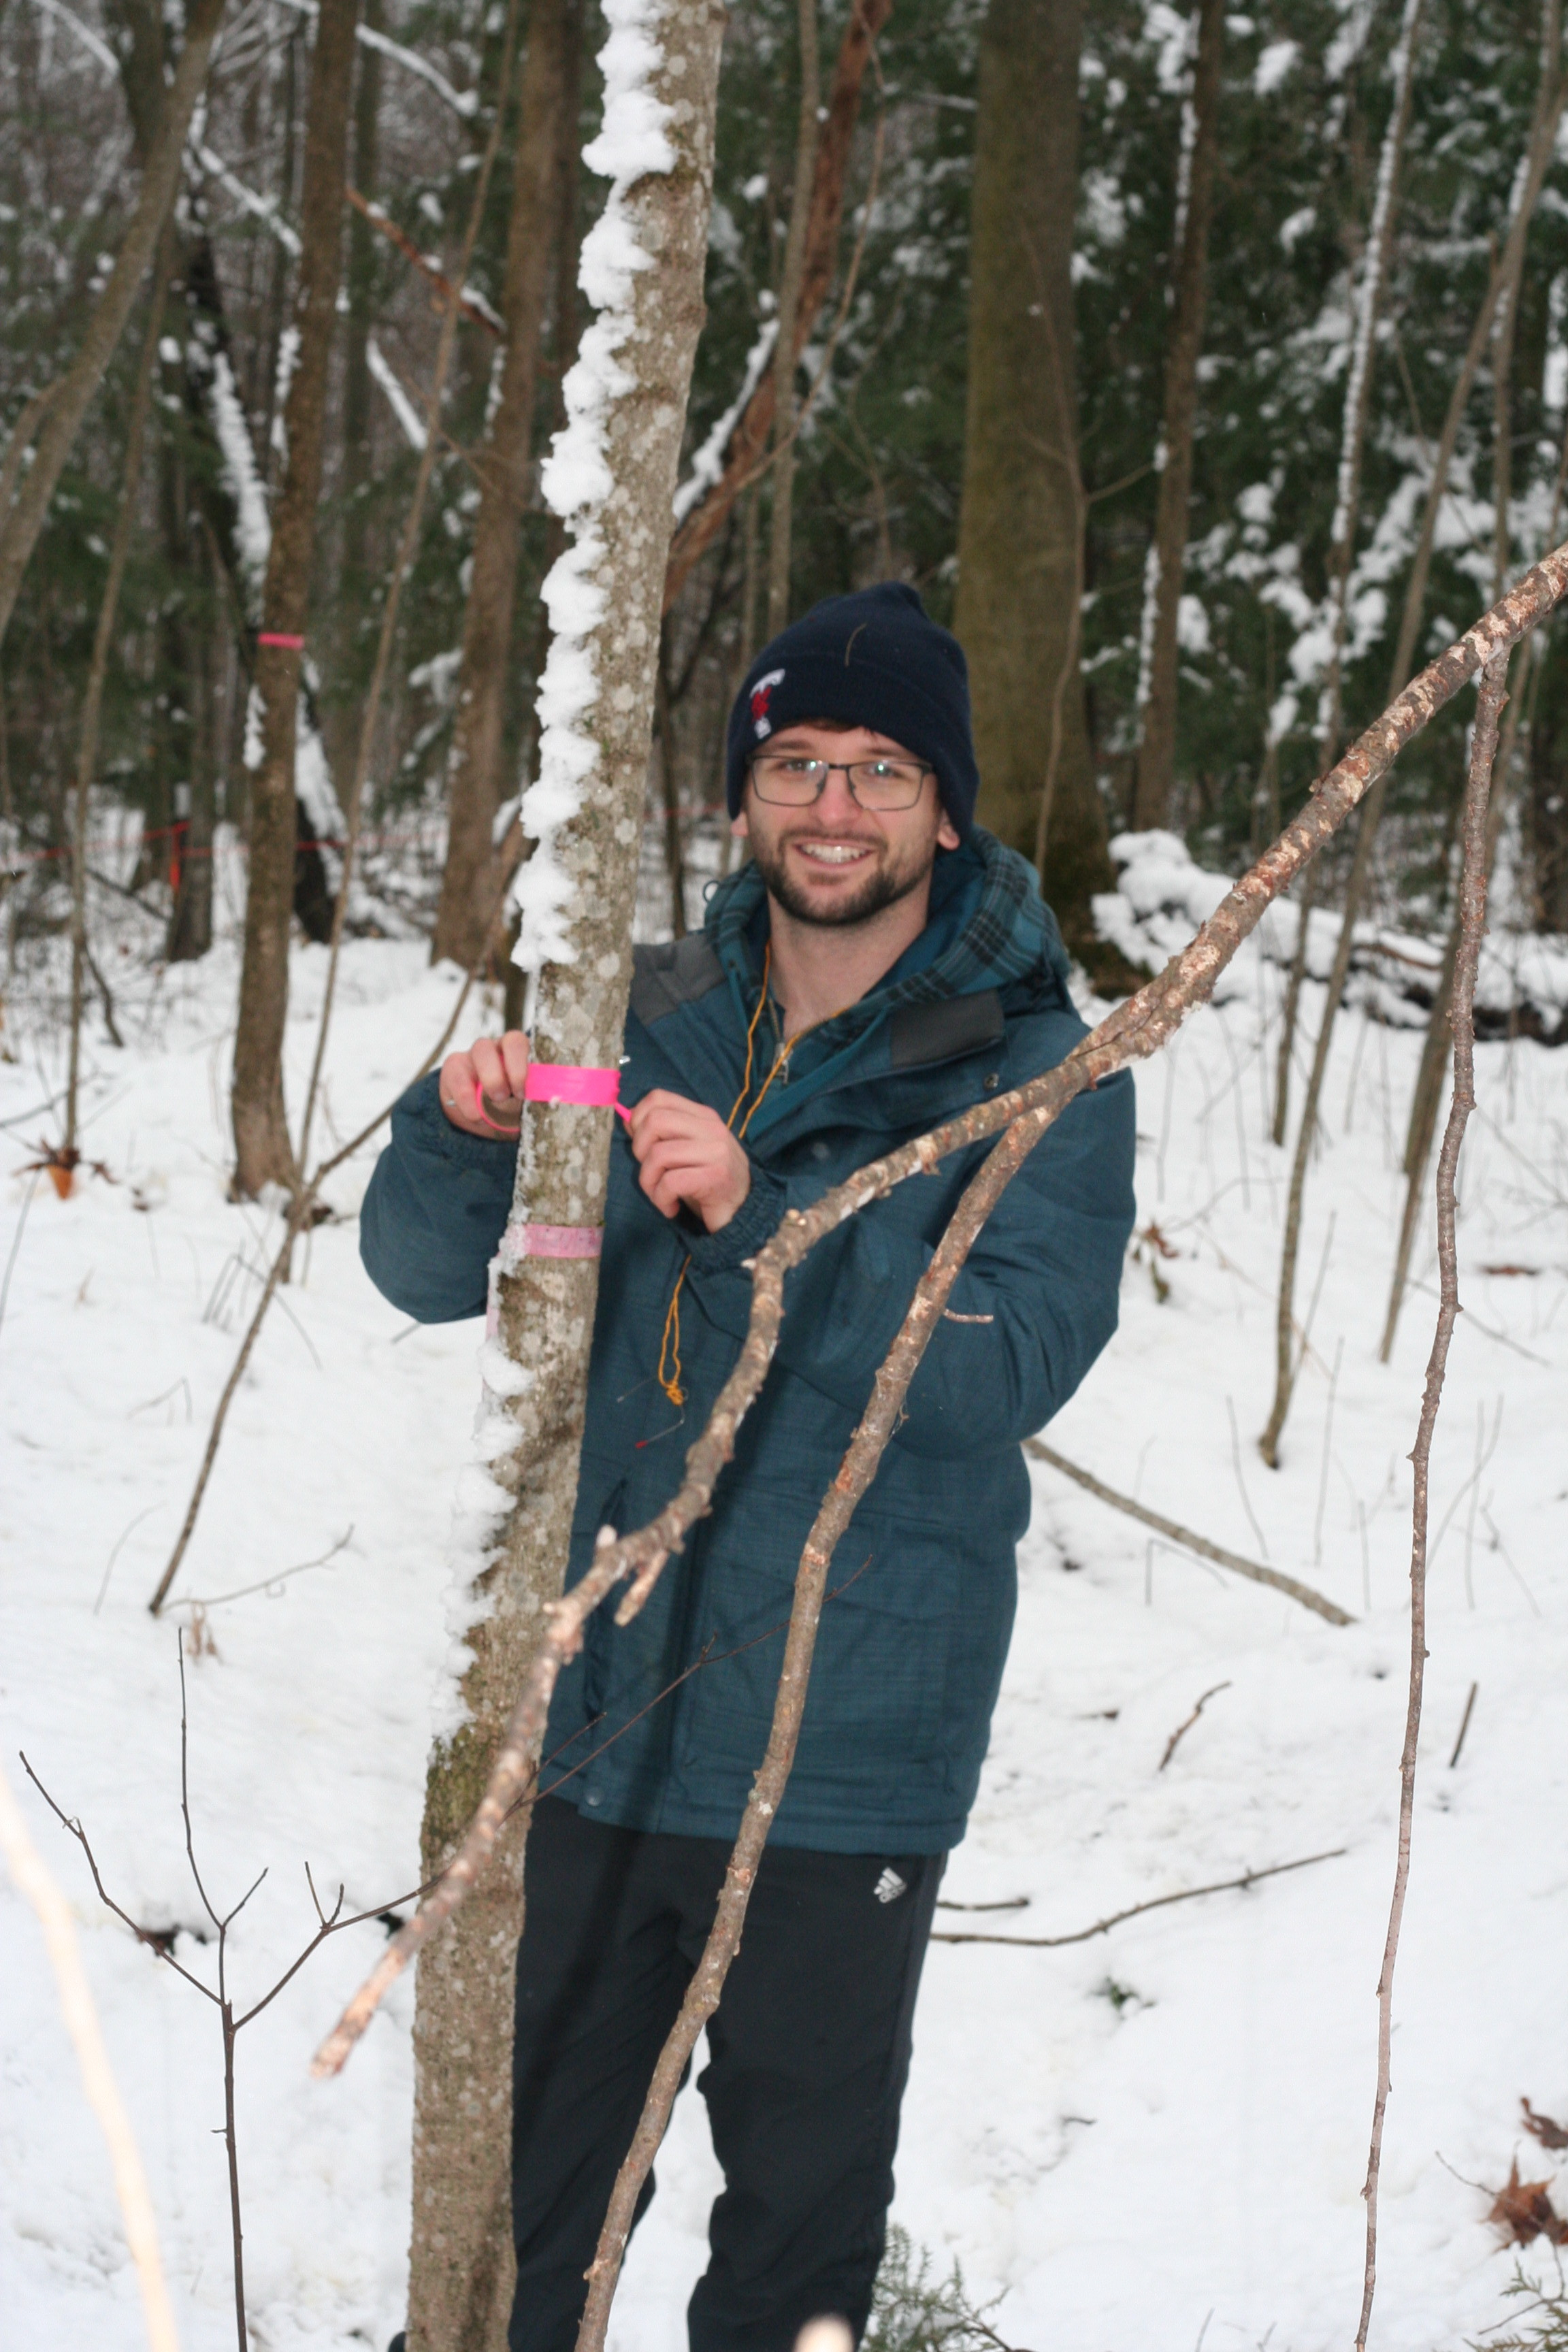 ACER Alumnus Tyler Orsulak during his 2019 internship, measuring a tree in the snow.